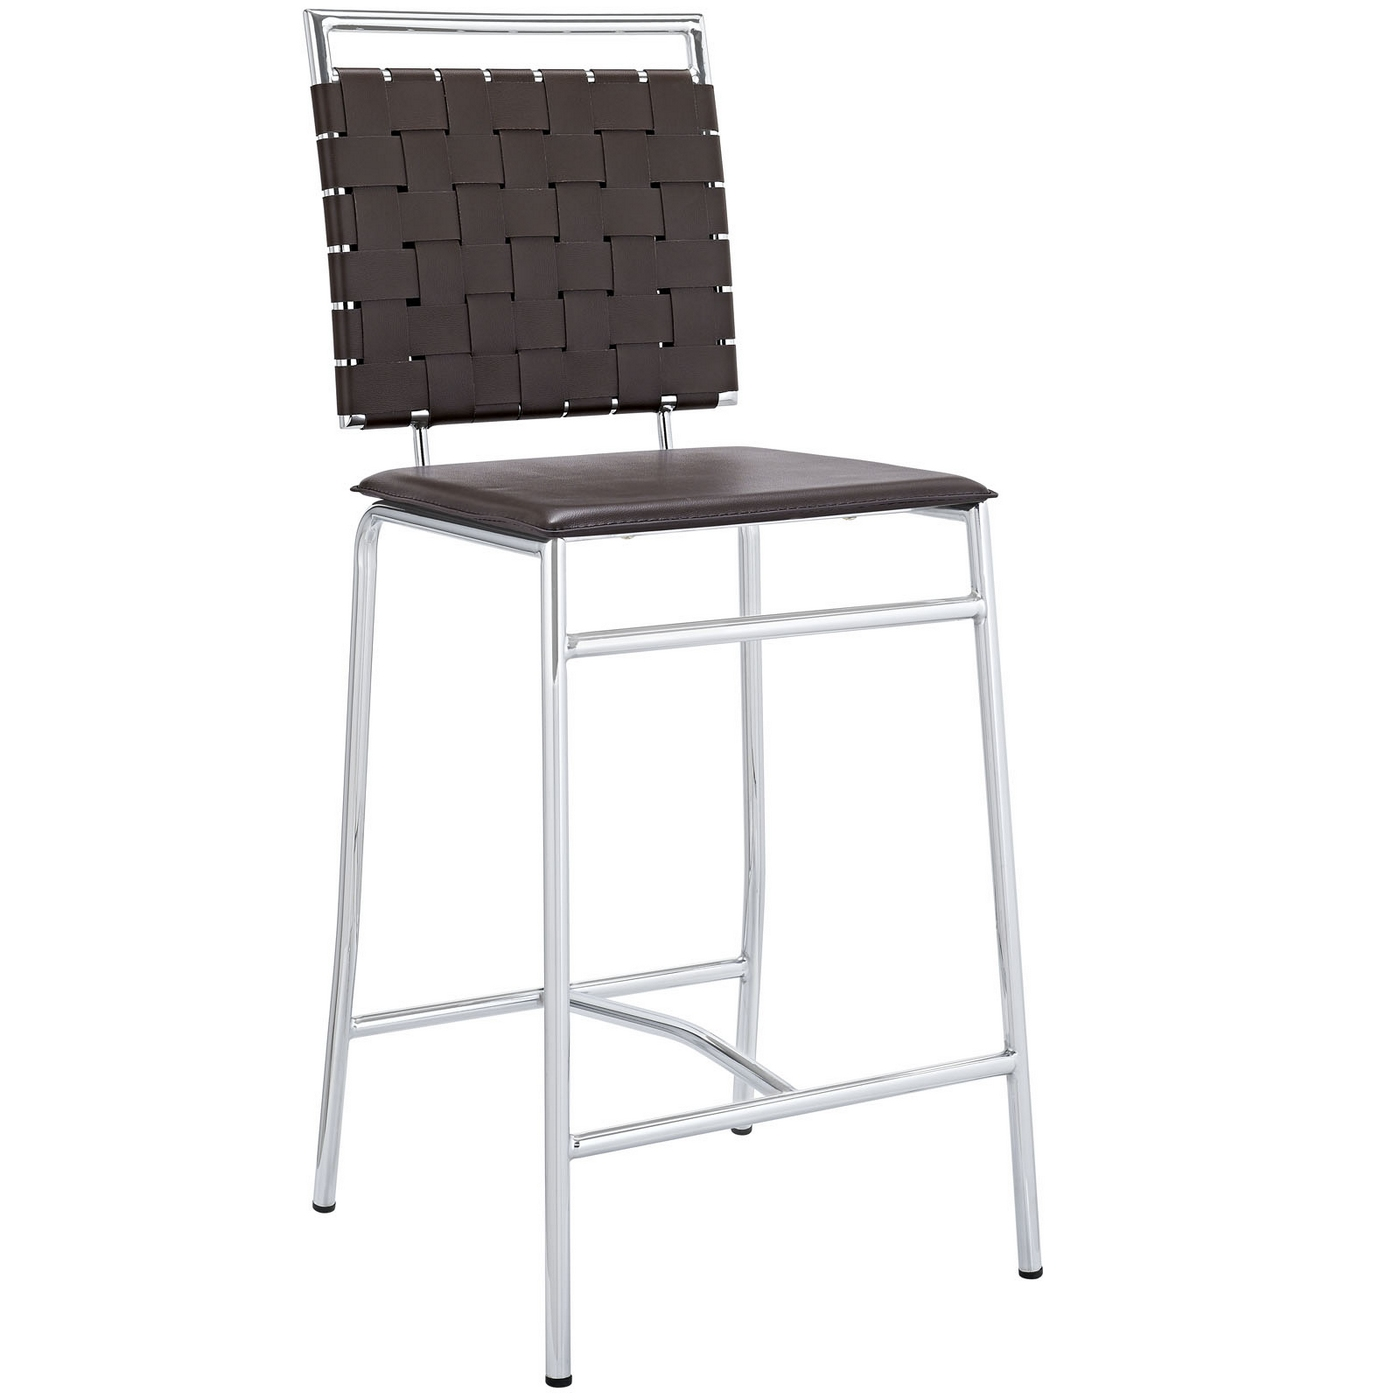 Modern Counter Height Stools Fuse Modern Counter Height Stool W Webbed Back And Chrome